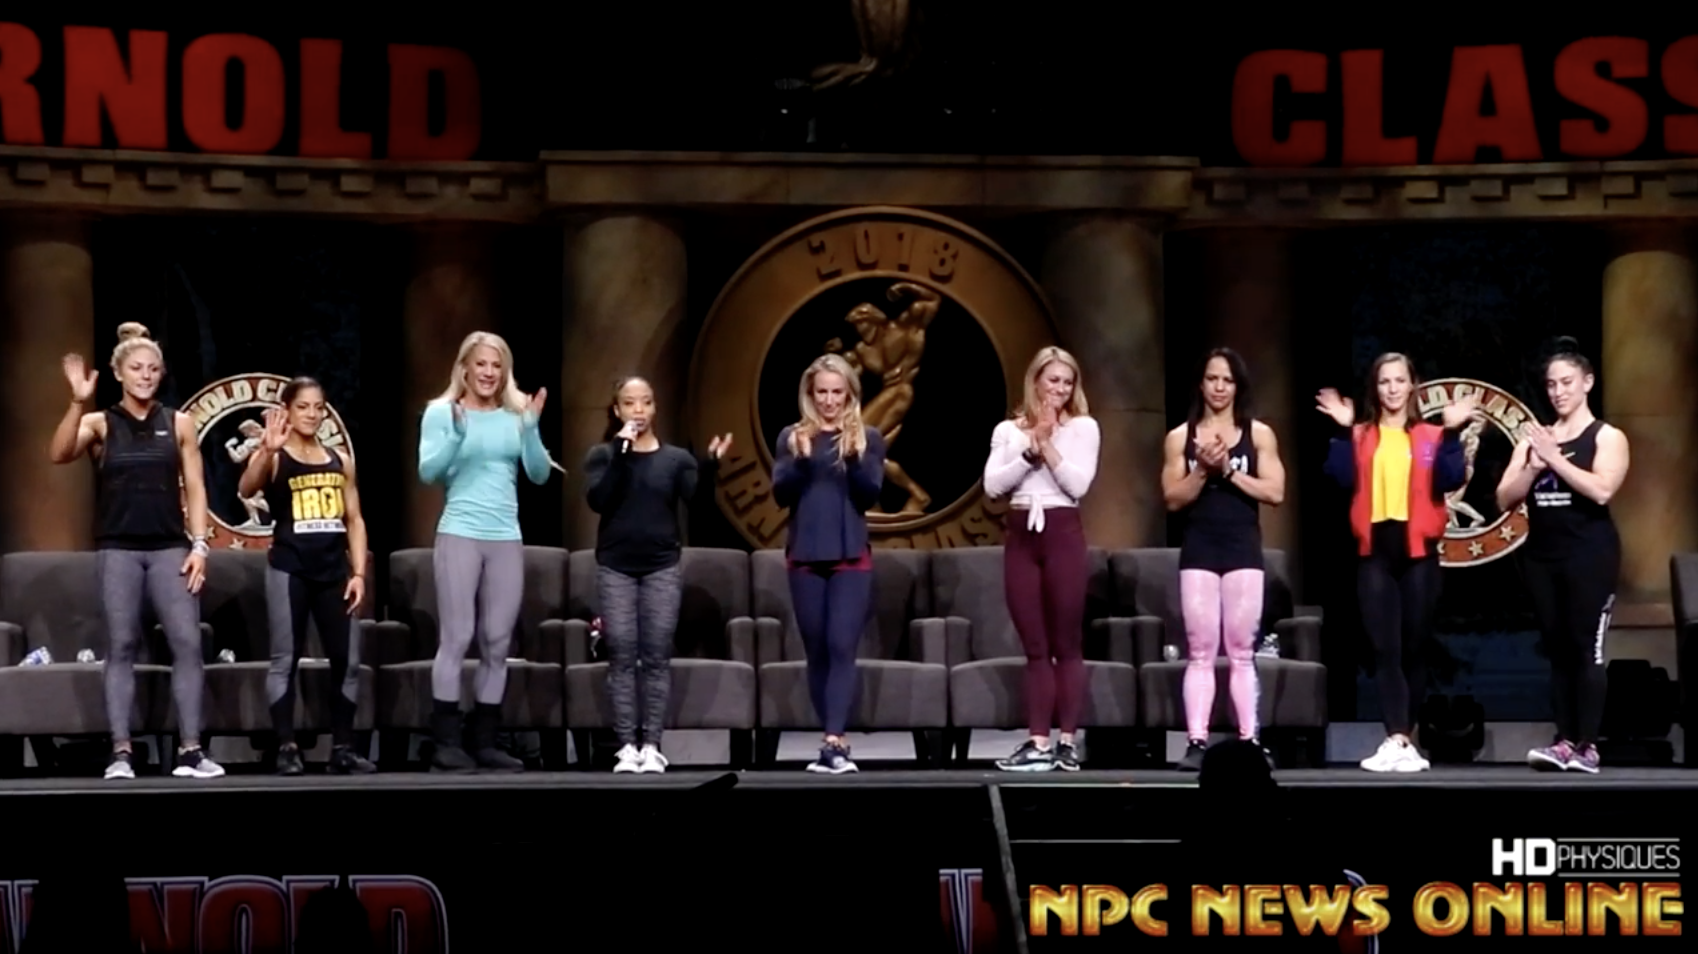 2018 Arnold Fitness Seminar Video: Pro Fitness Competitors Give Advice To NPC & IFBB Pro League Fitness Competitors